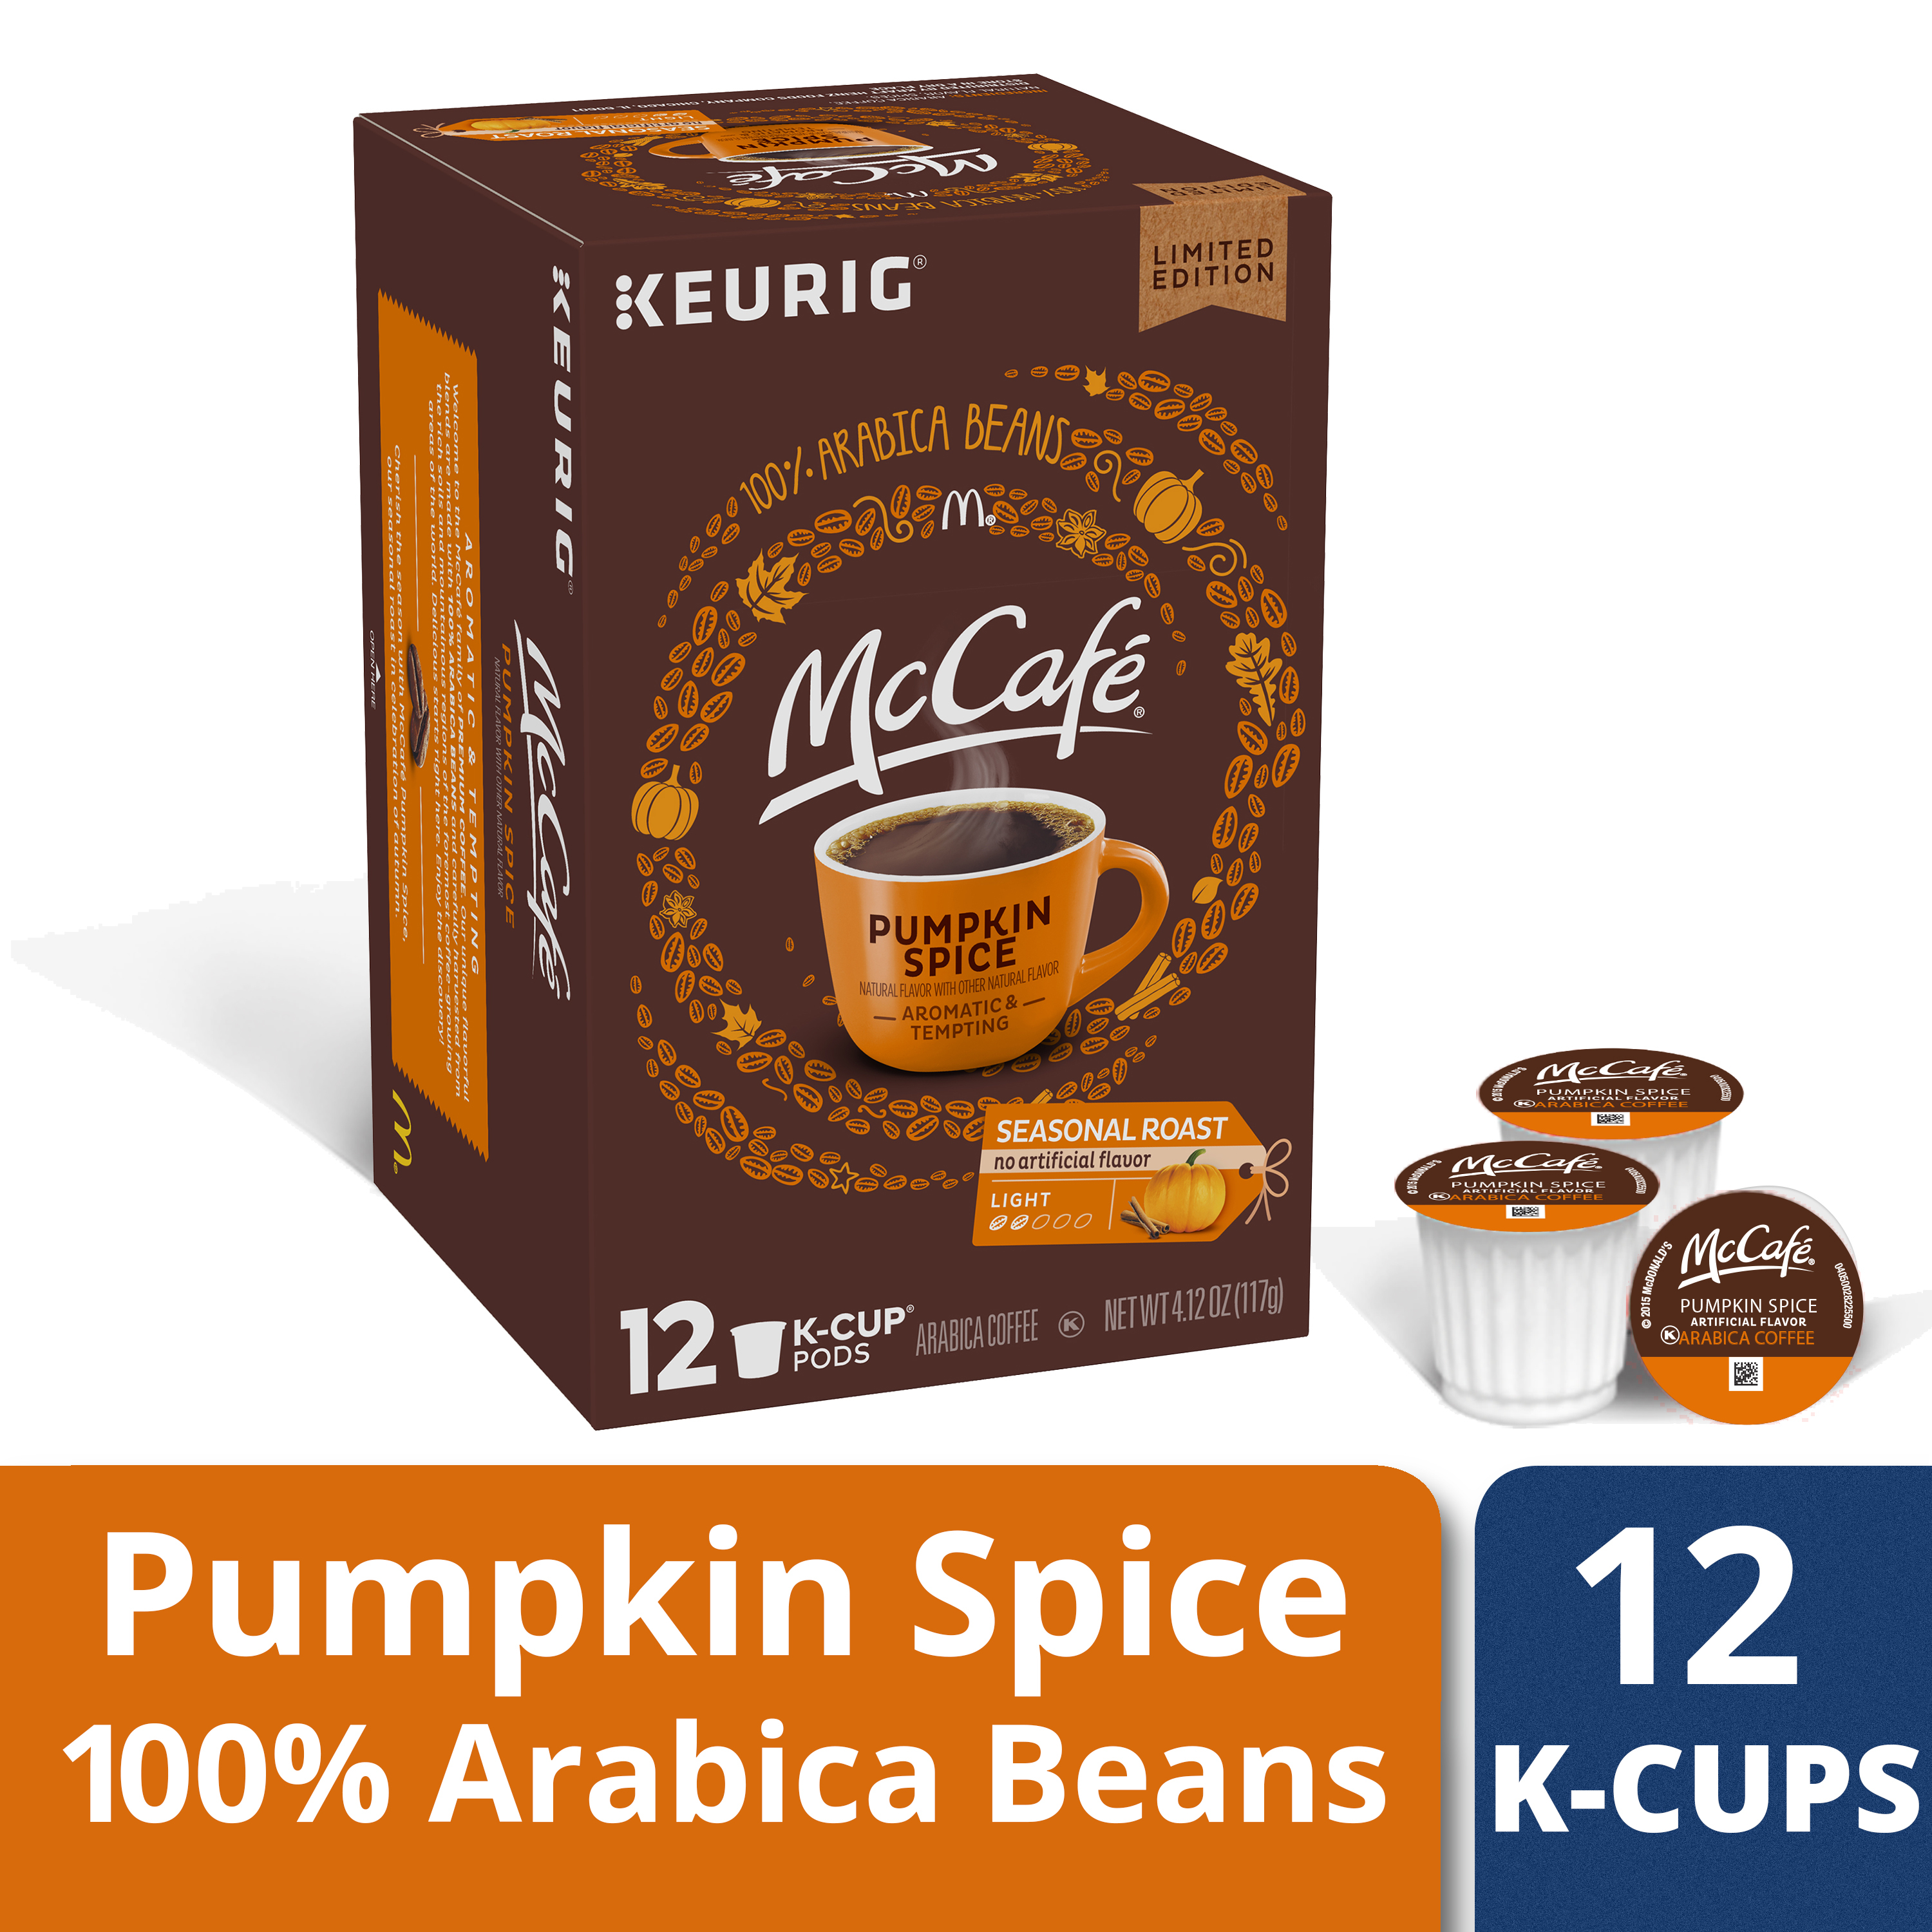 McCafé Pumpkin Spice Coffee K-Cup Pods, 12 count